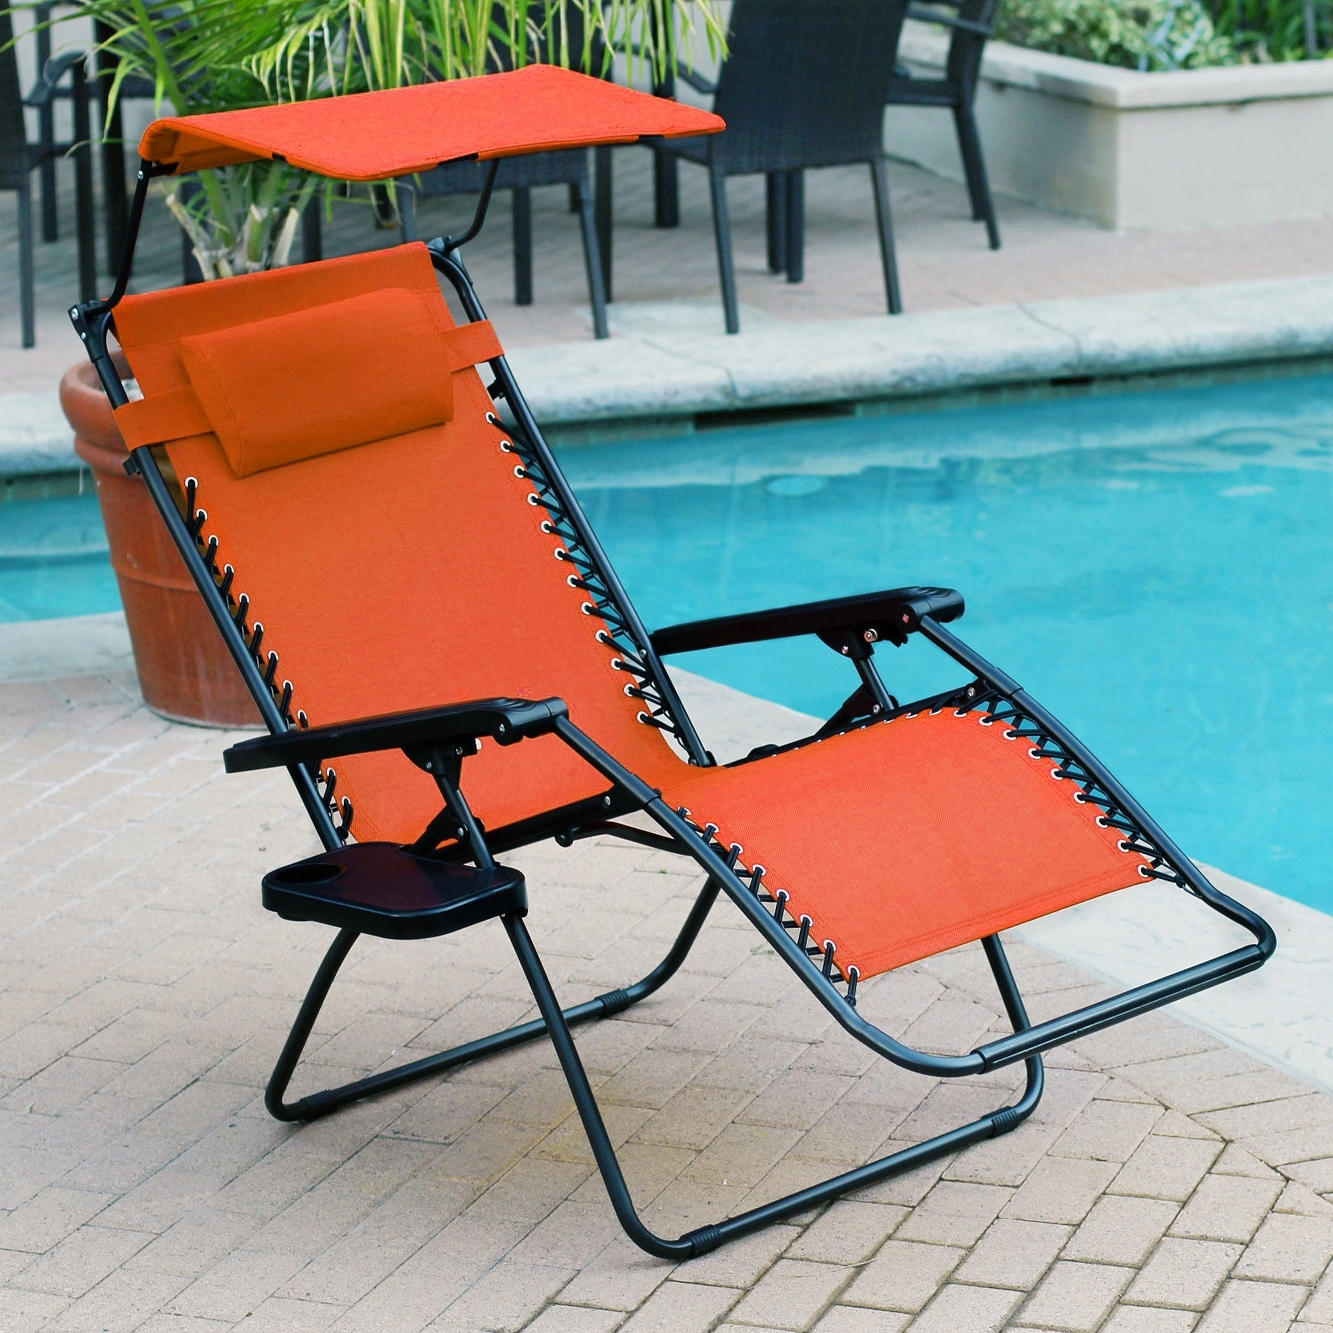 Zero Gravity Chaise Lounge Chairs Intended For Trendy 4 Best Zero Gravity Chairs On The Market (2018 Reviews & Guide) (View 10 of 15)